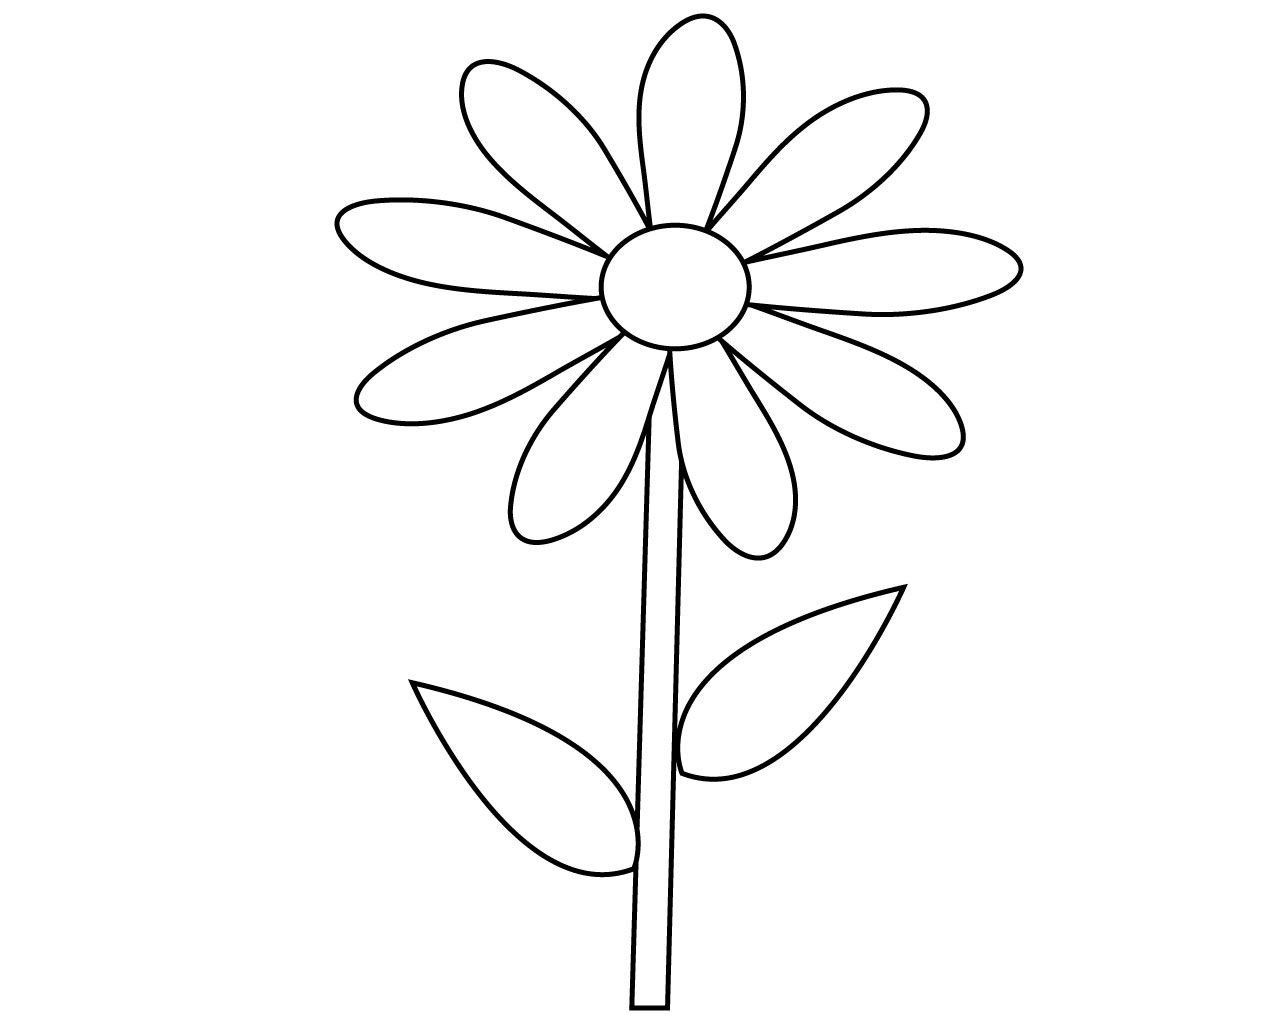 Printable Flowers Coloring Pages Best Simple Flower Coloring Pages To Print In 2020 Printable Flower Coloring Pages Flower Printable Flower Coloring Pages